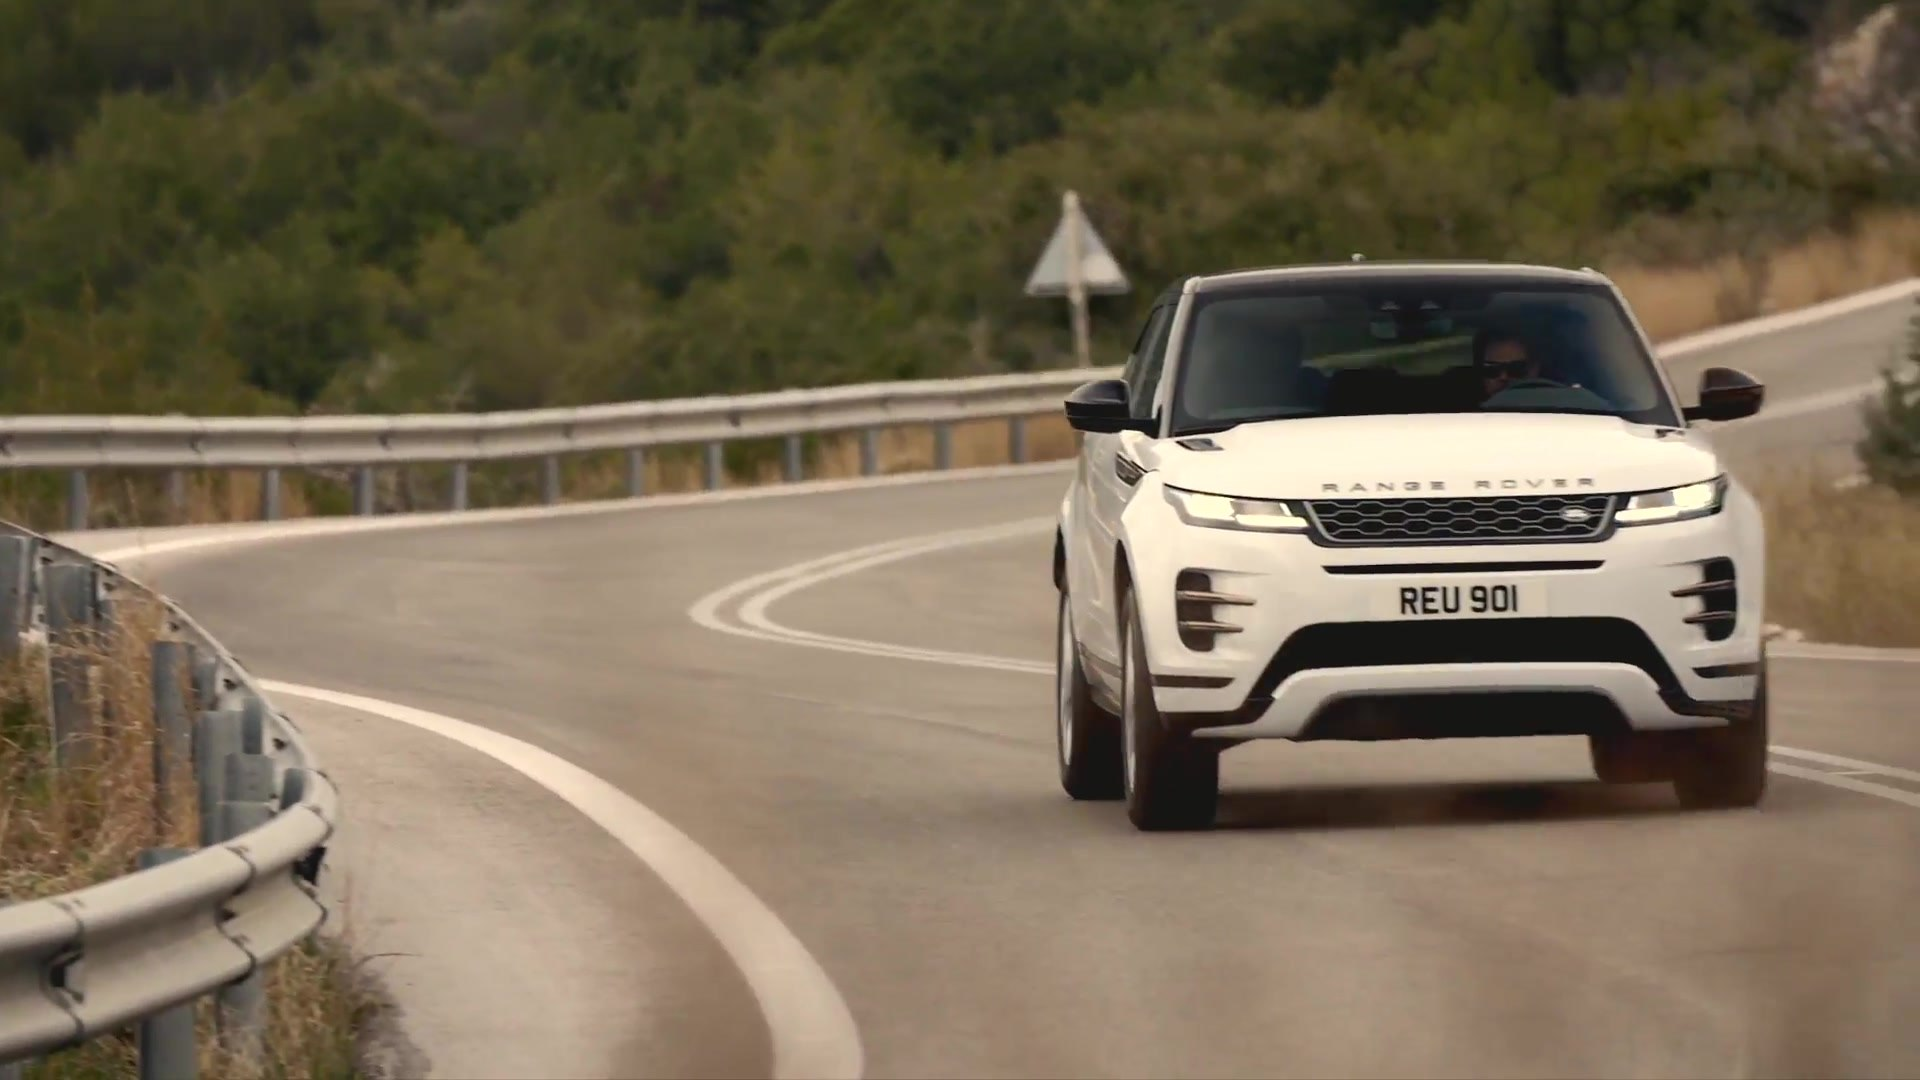 New Range Rover Evoque R-Dynamic S derivative in Yulong White Driving Video